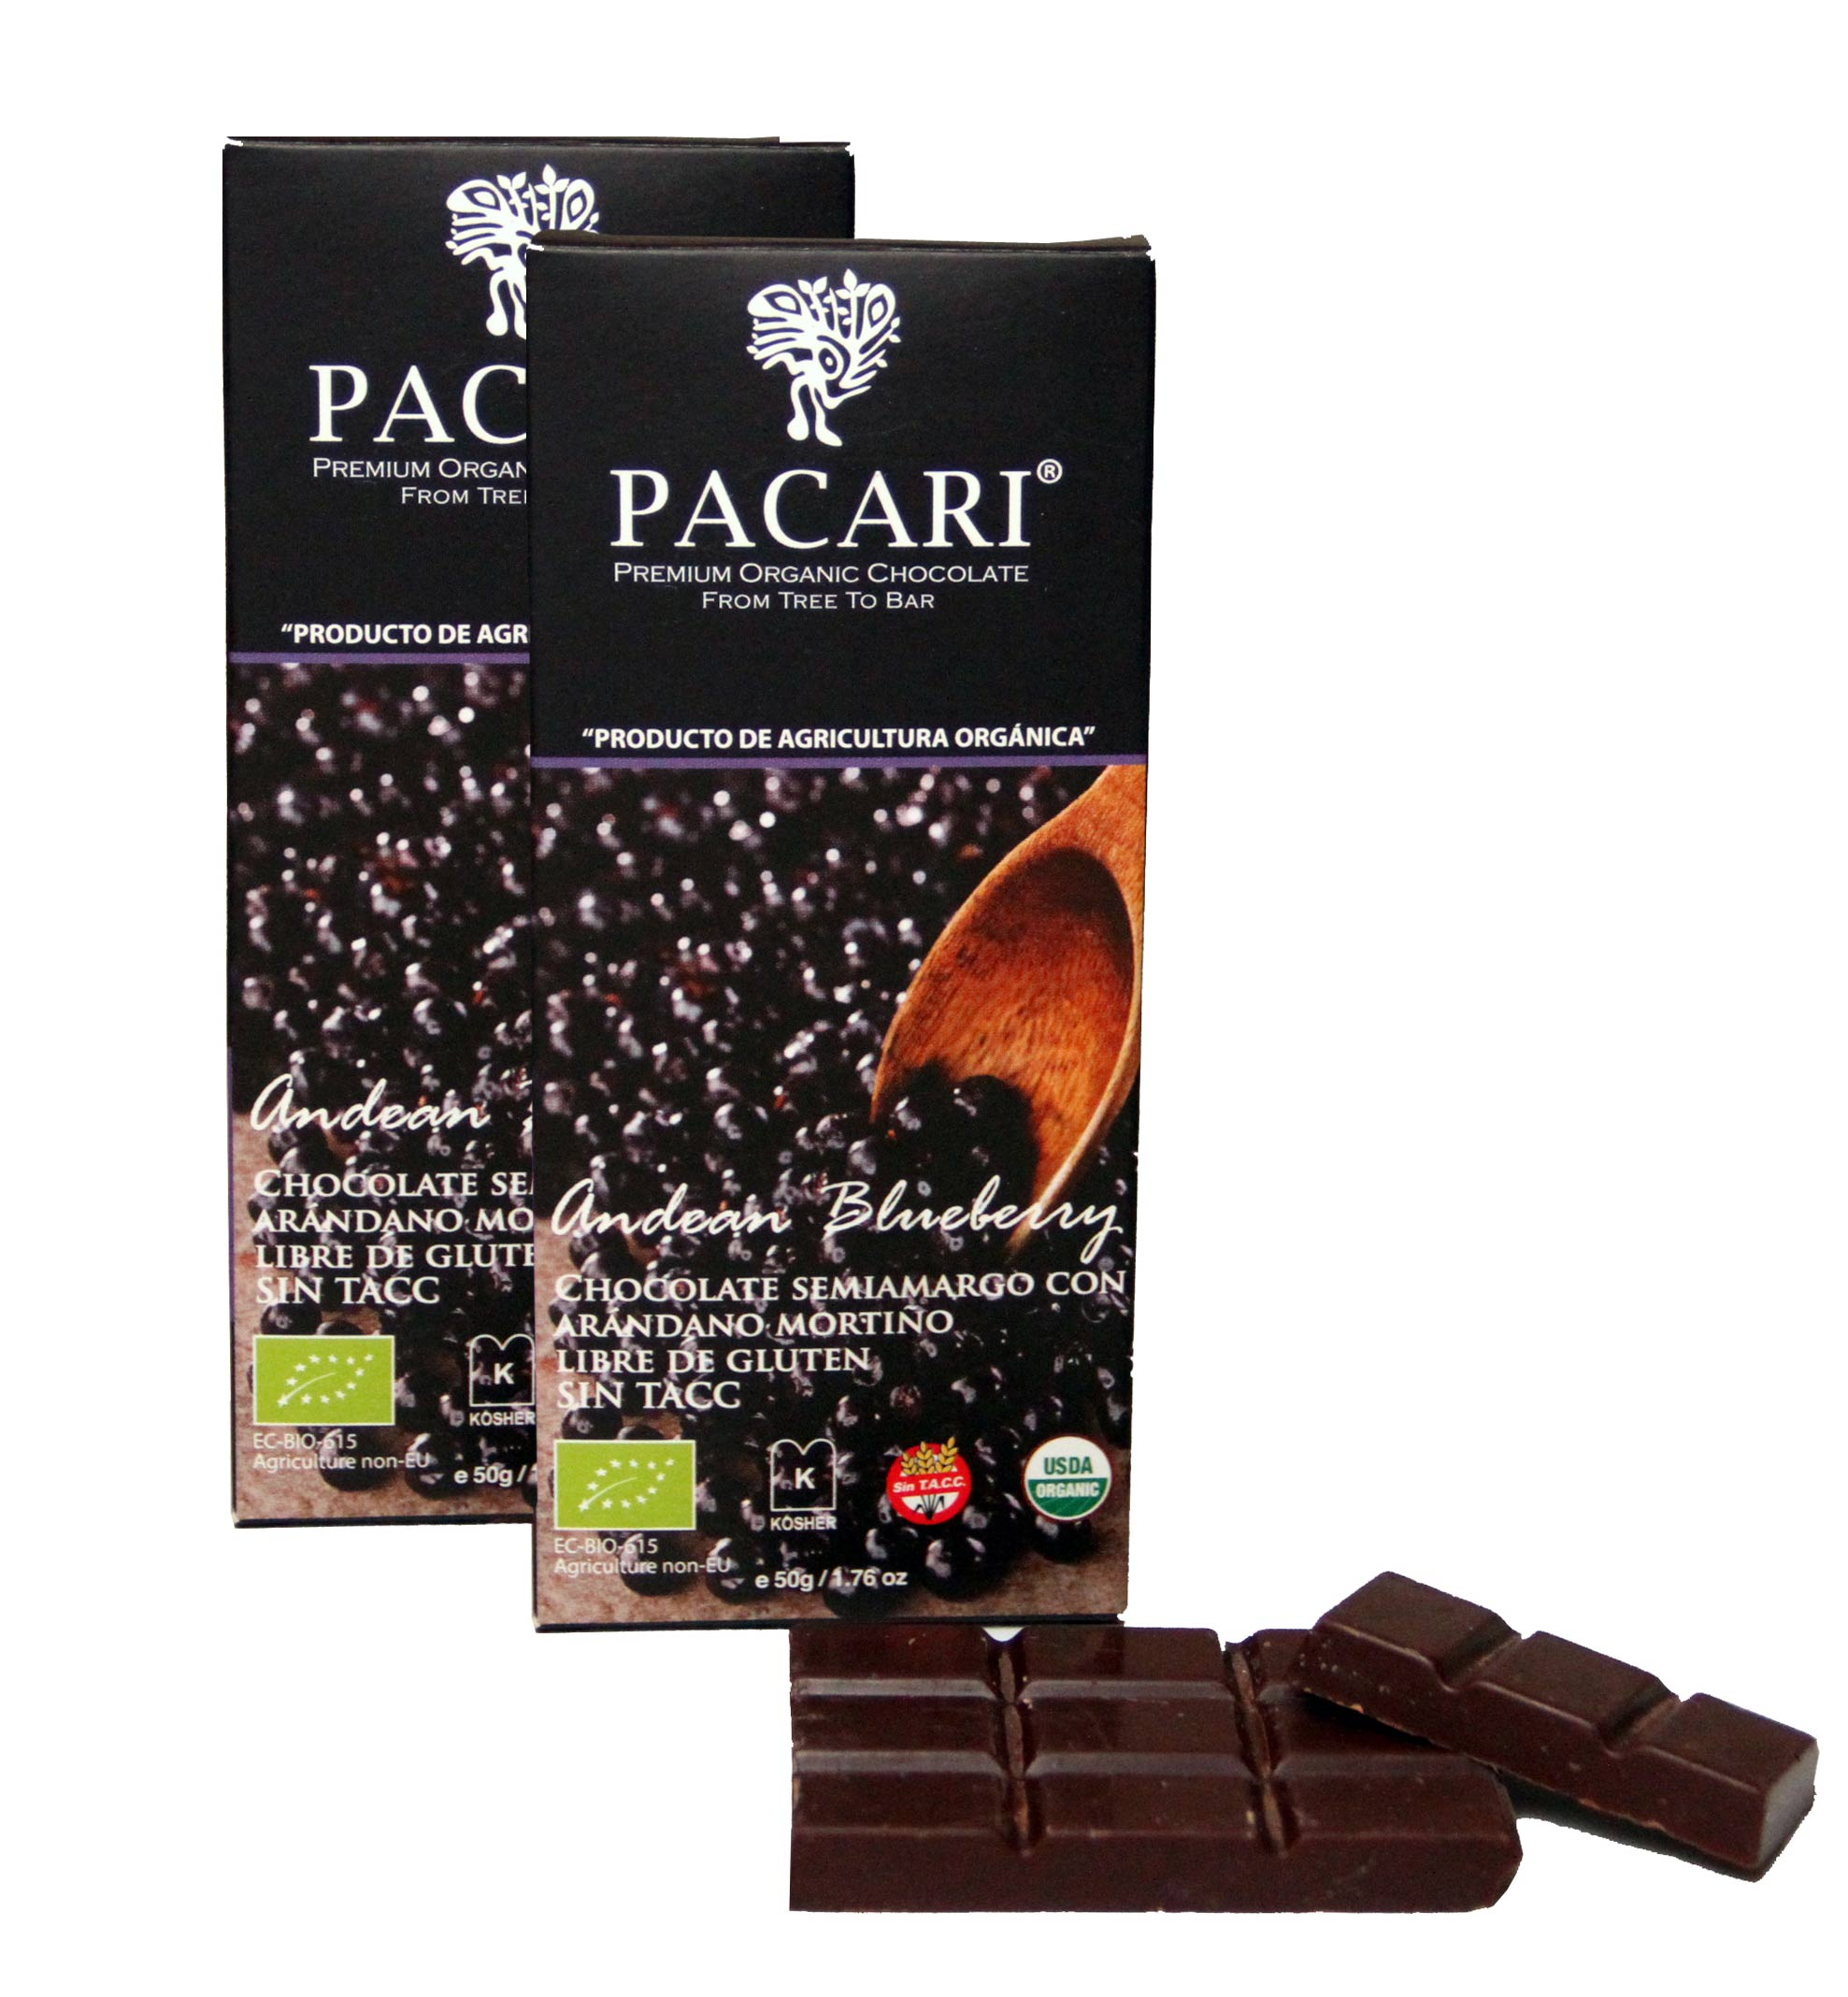 PROMO! Chocolate barra blueberry 35% off en la segunda unidad